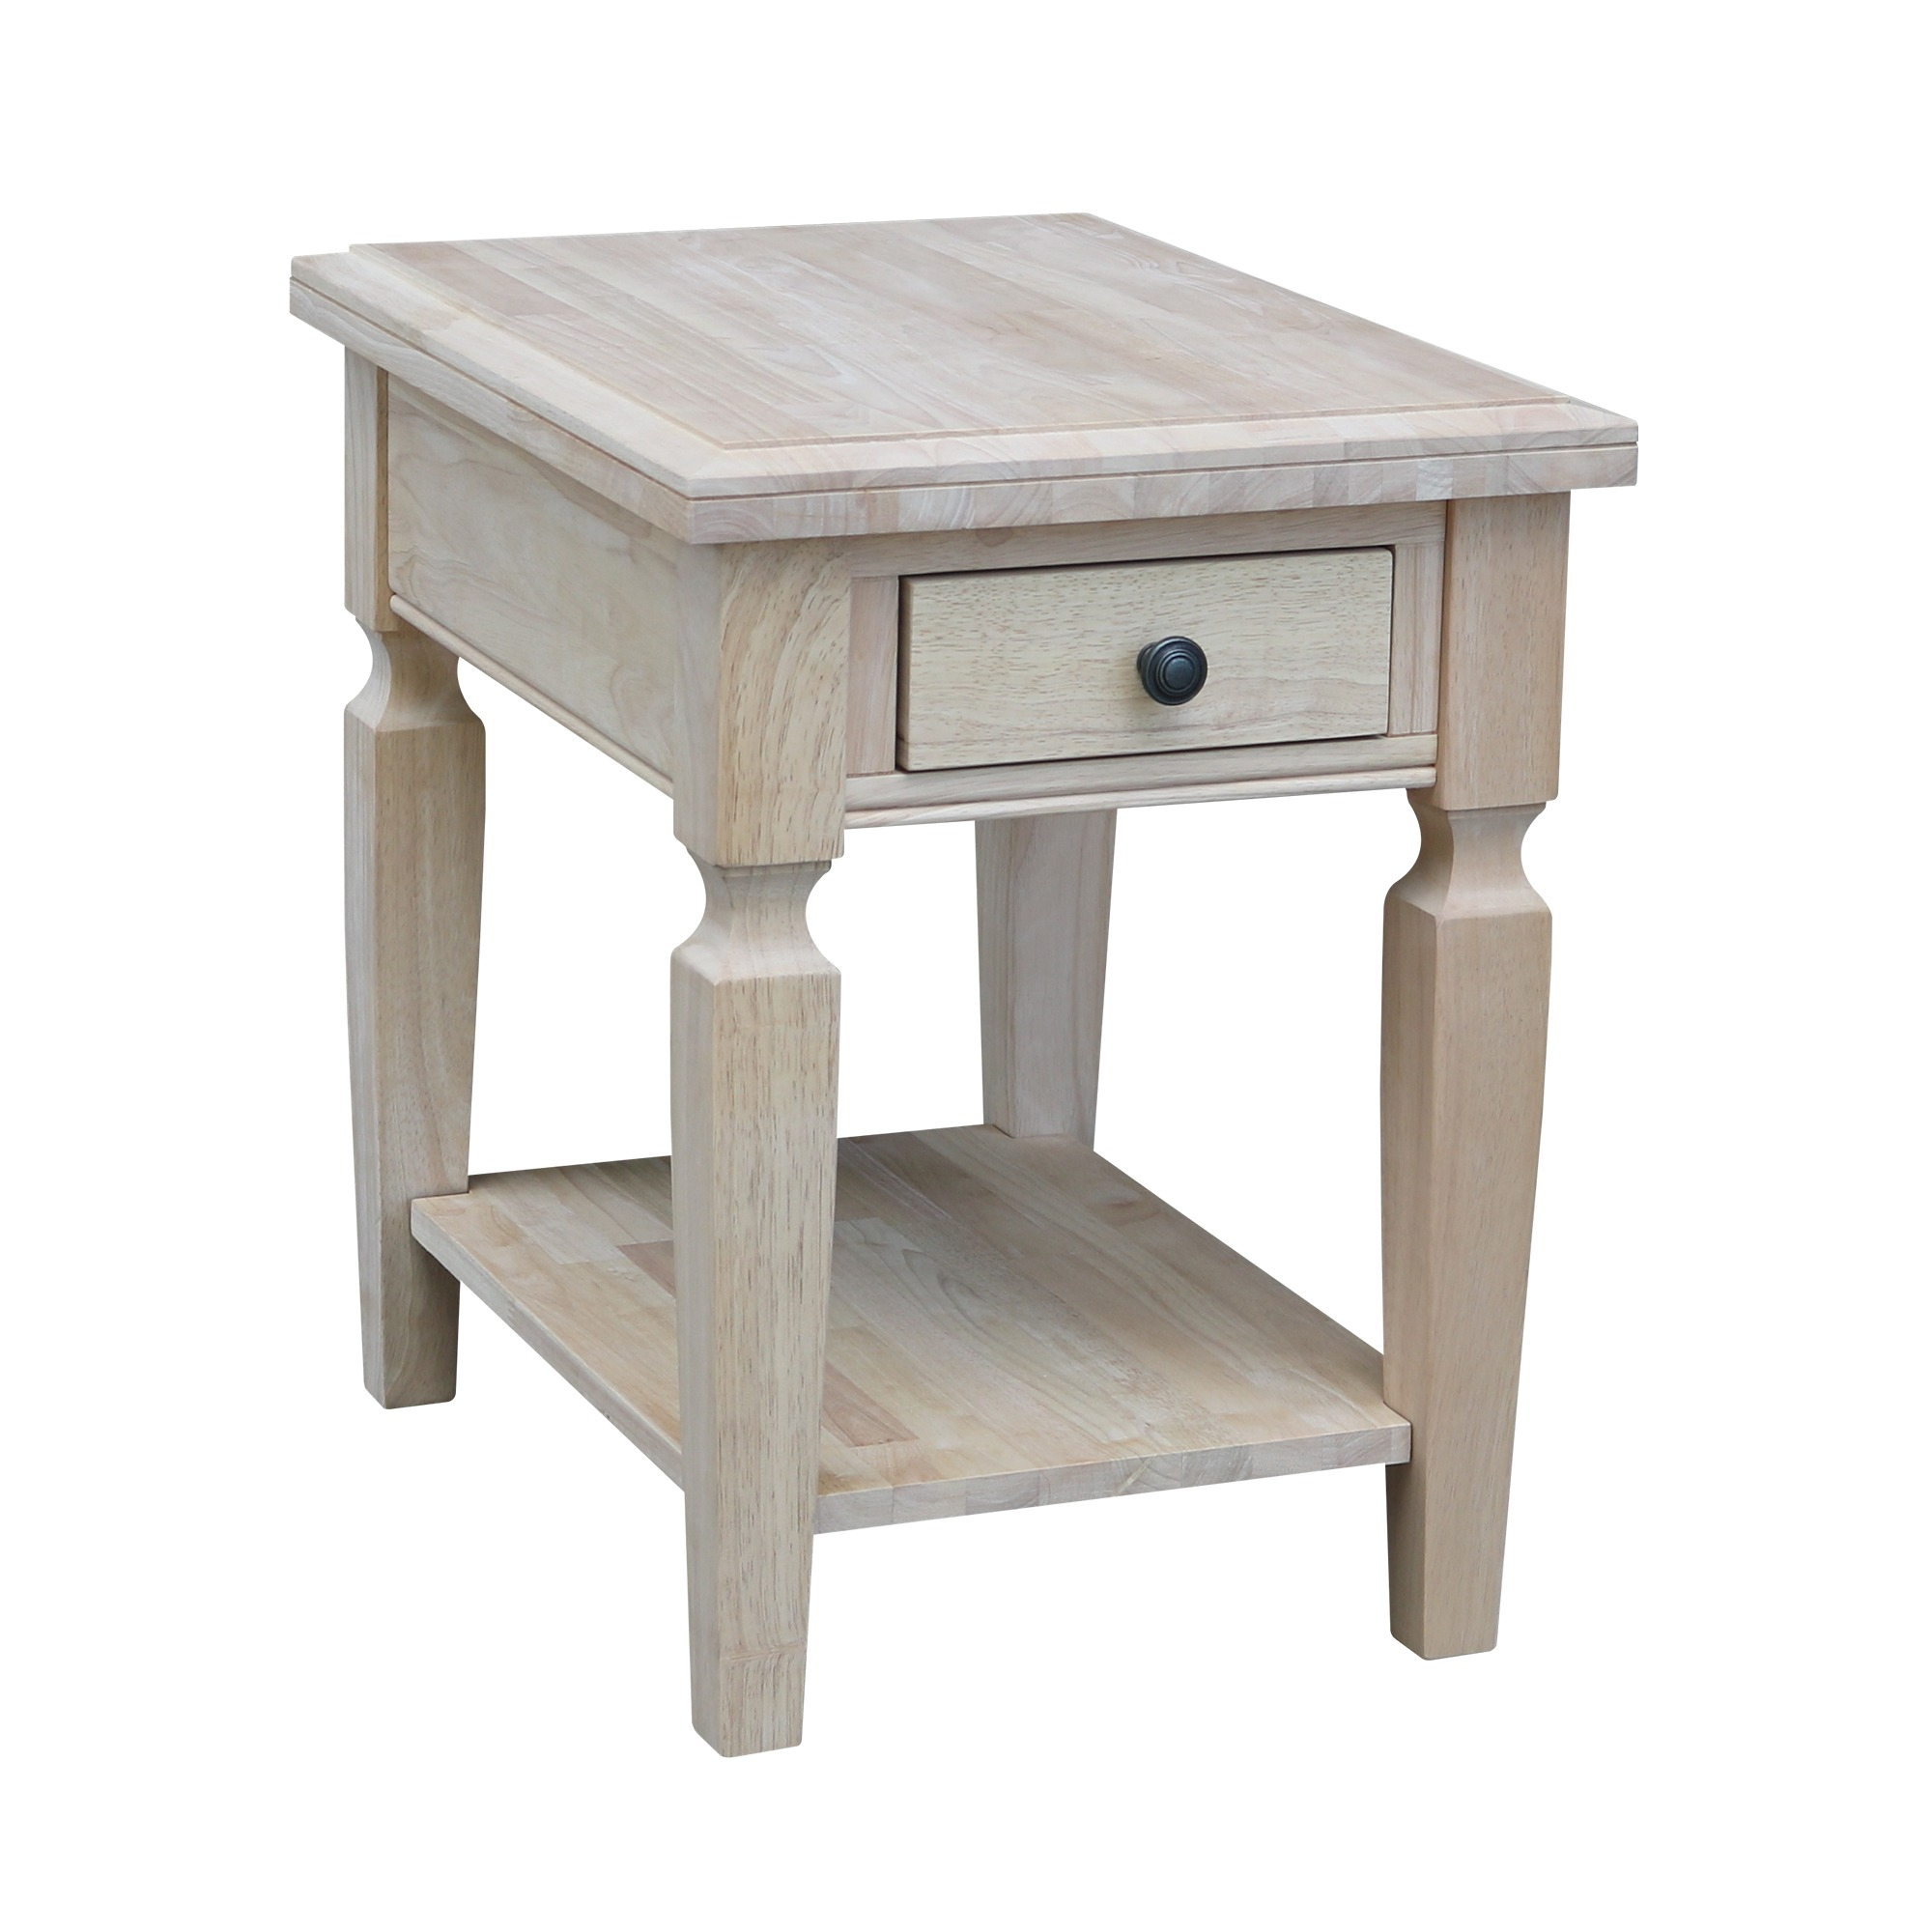 Well Known Shaker Unfinished Solid Parawood Tall Coffee Tables Inside Ot 15e Vista End Table W/ Free Shipping (View 4 of 20)